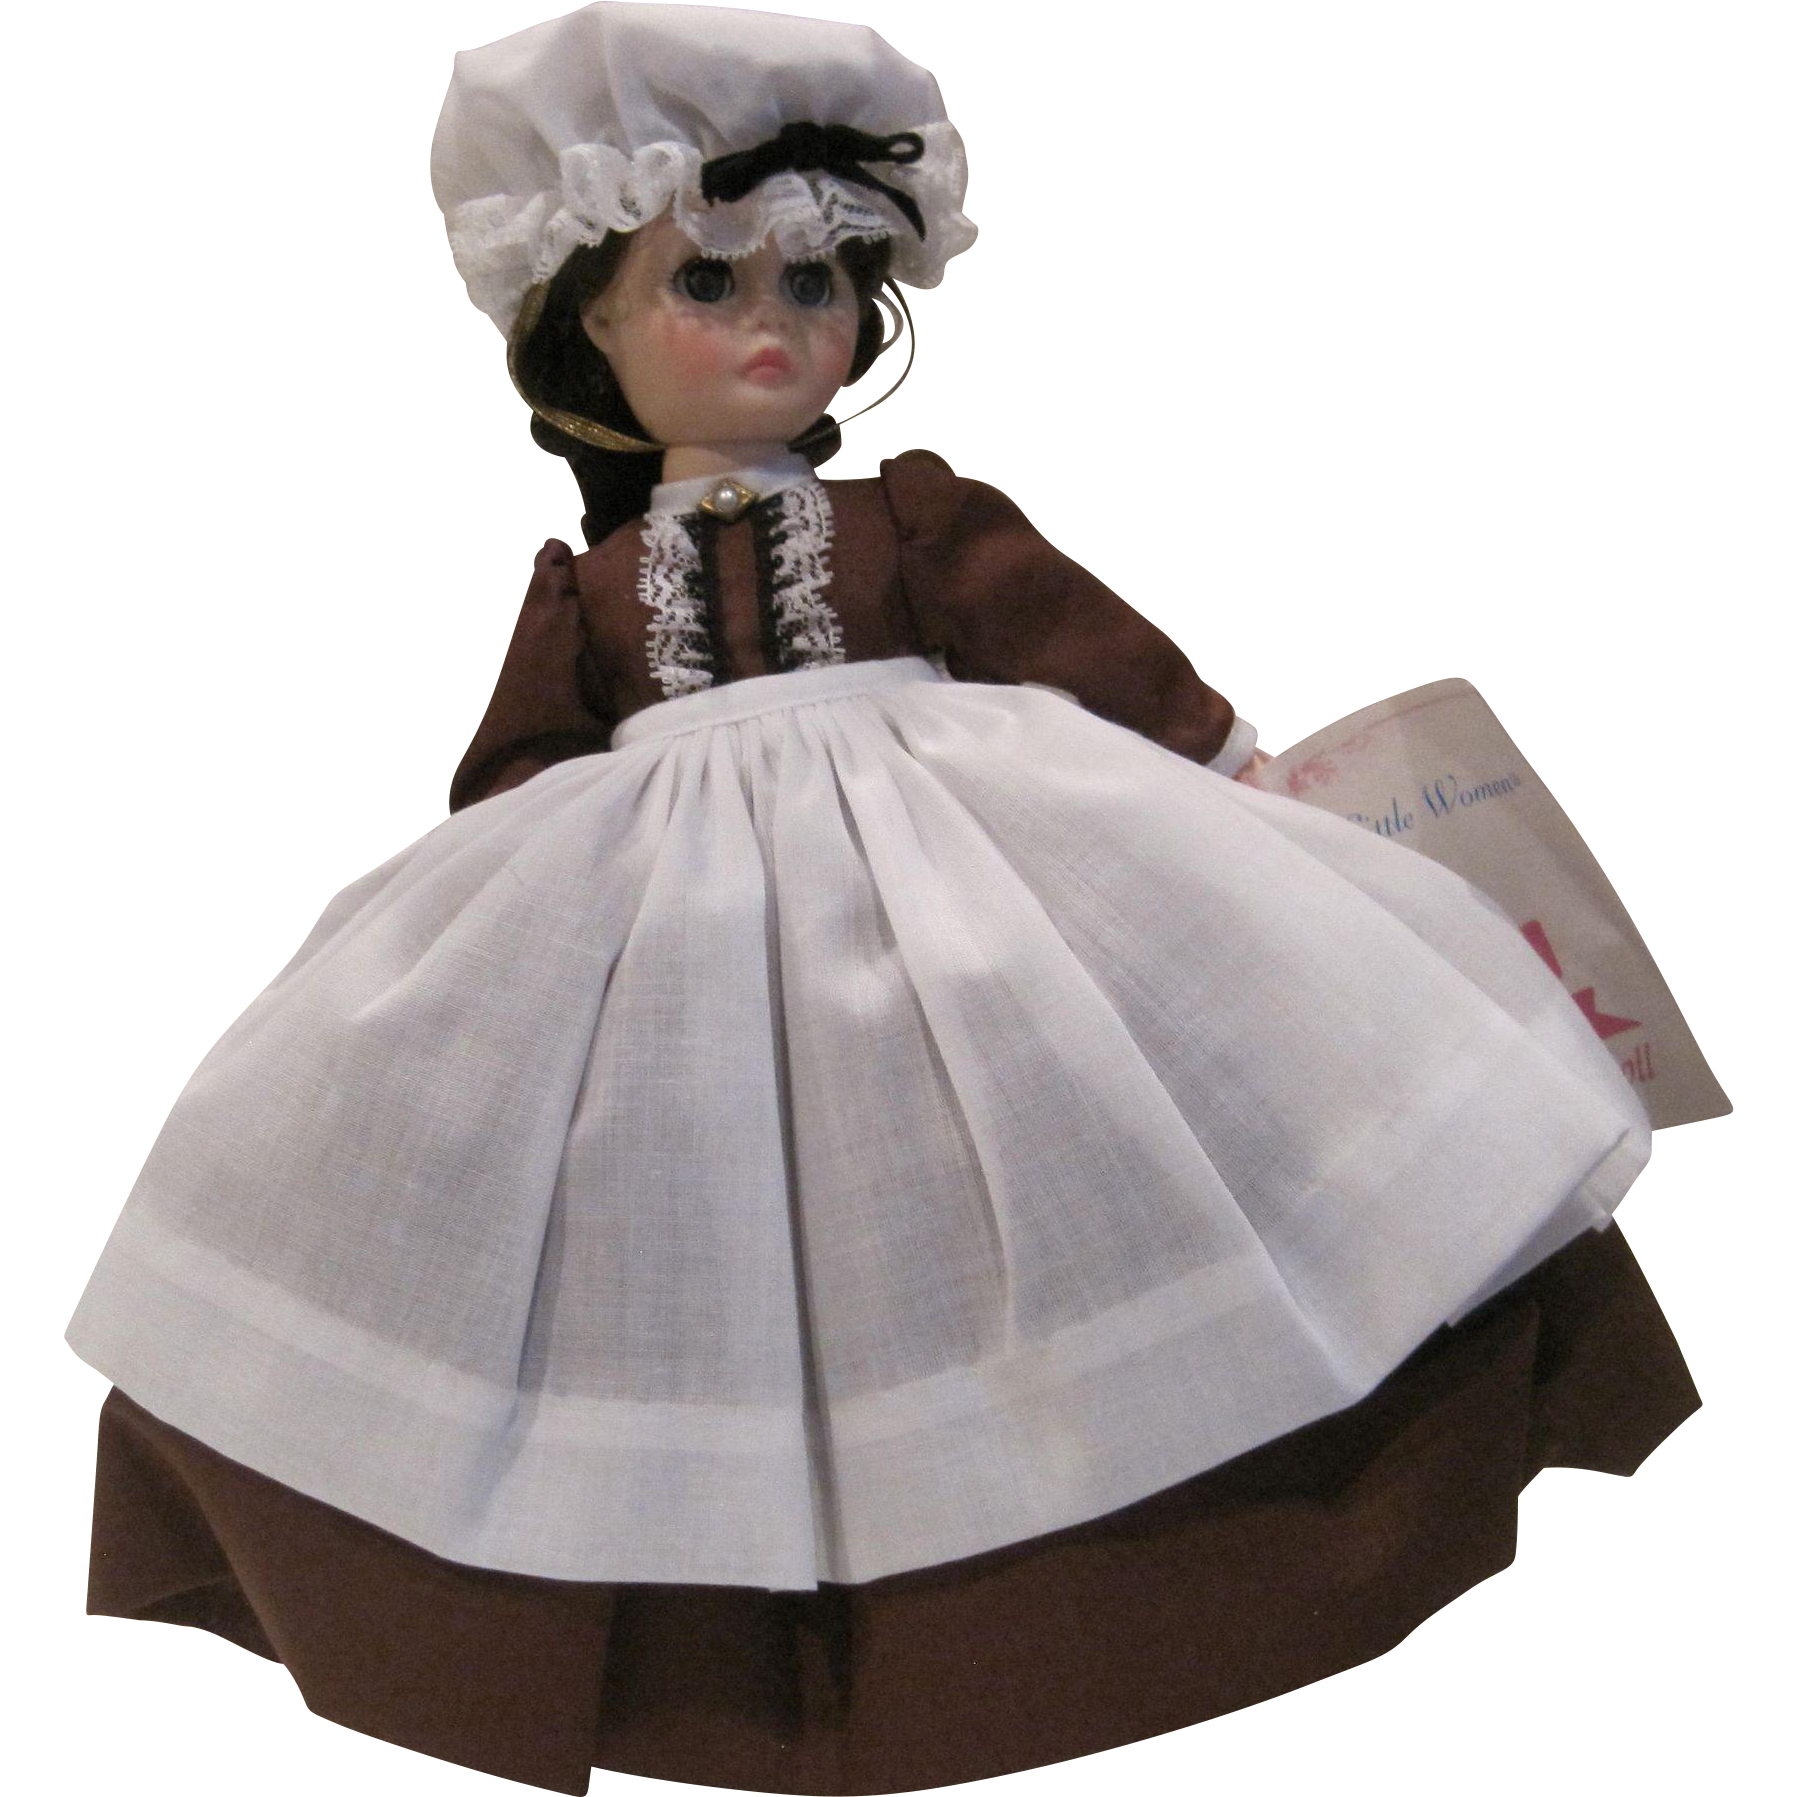 Vintage Madam Alexander Marme 1324 from the Little Women series